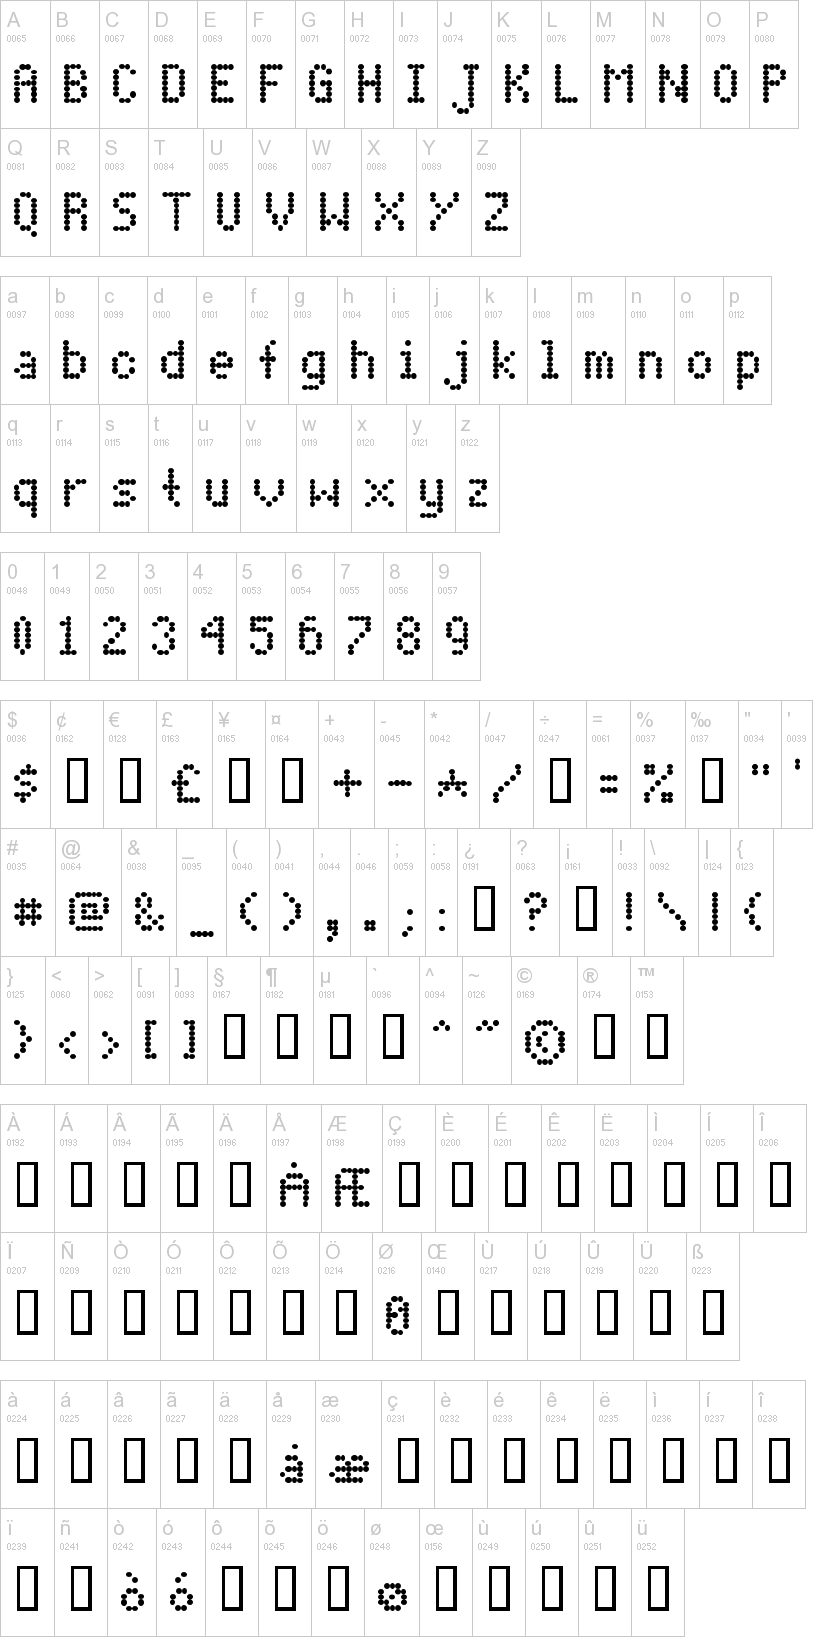 how to put dot on top of letter in word